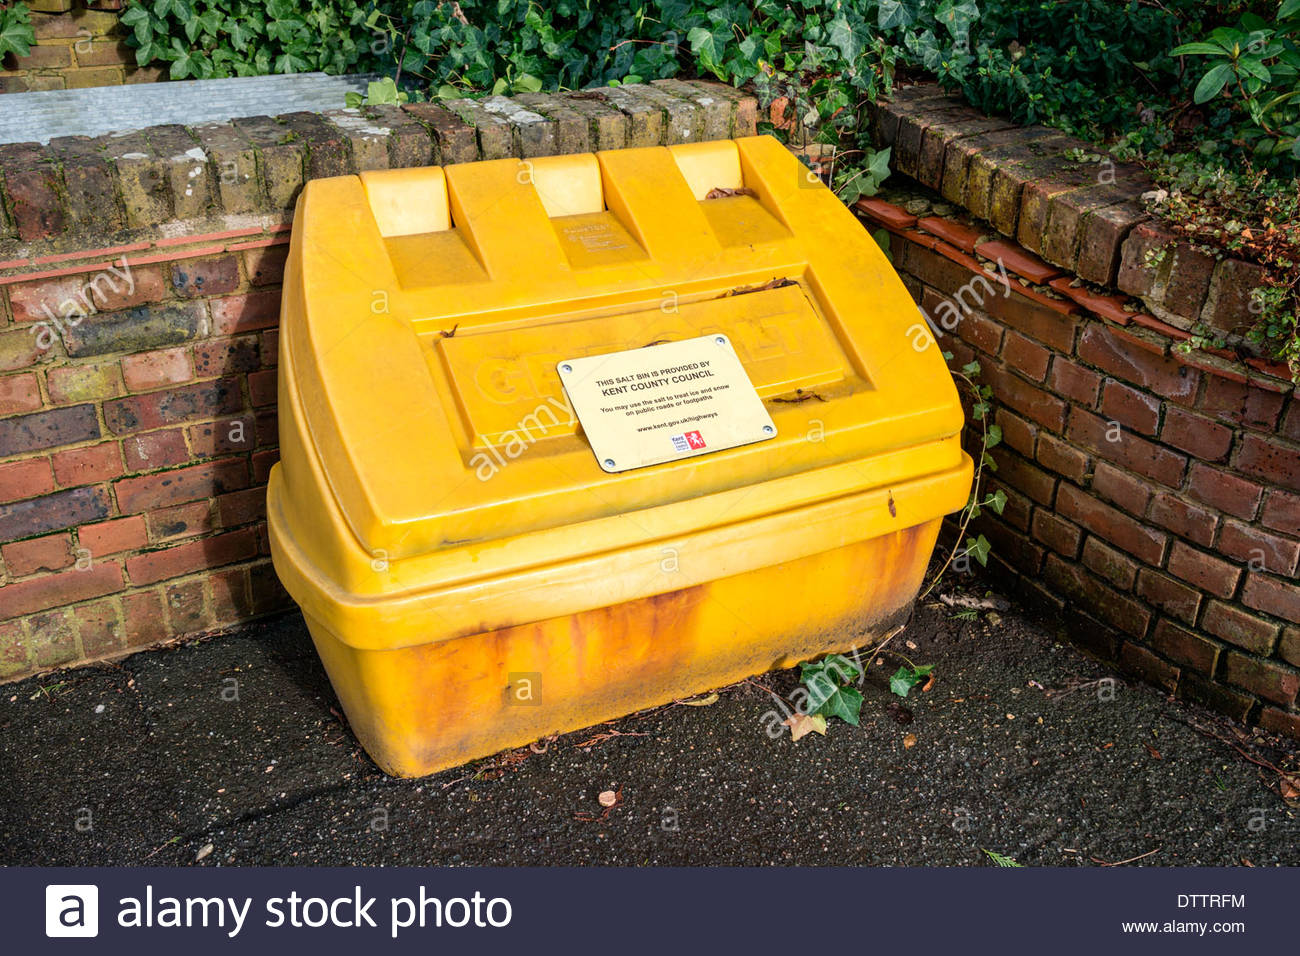 Yellow Grit Bin - Stock Image